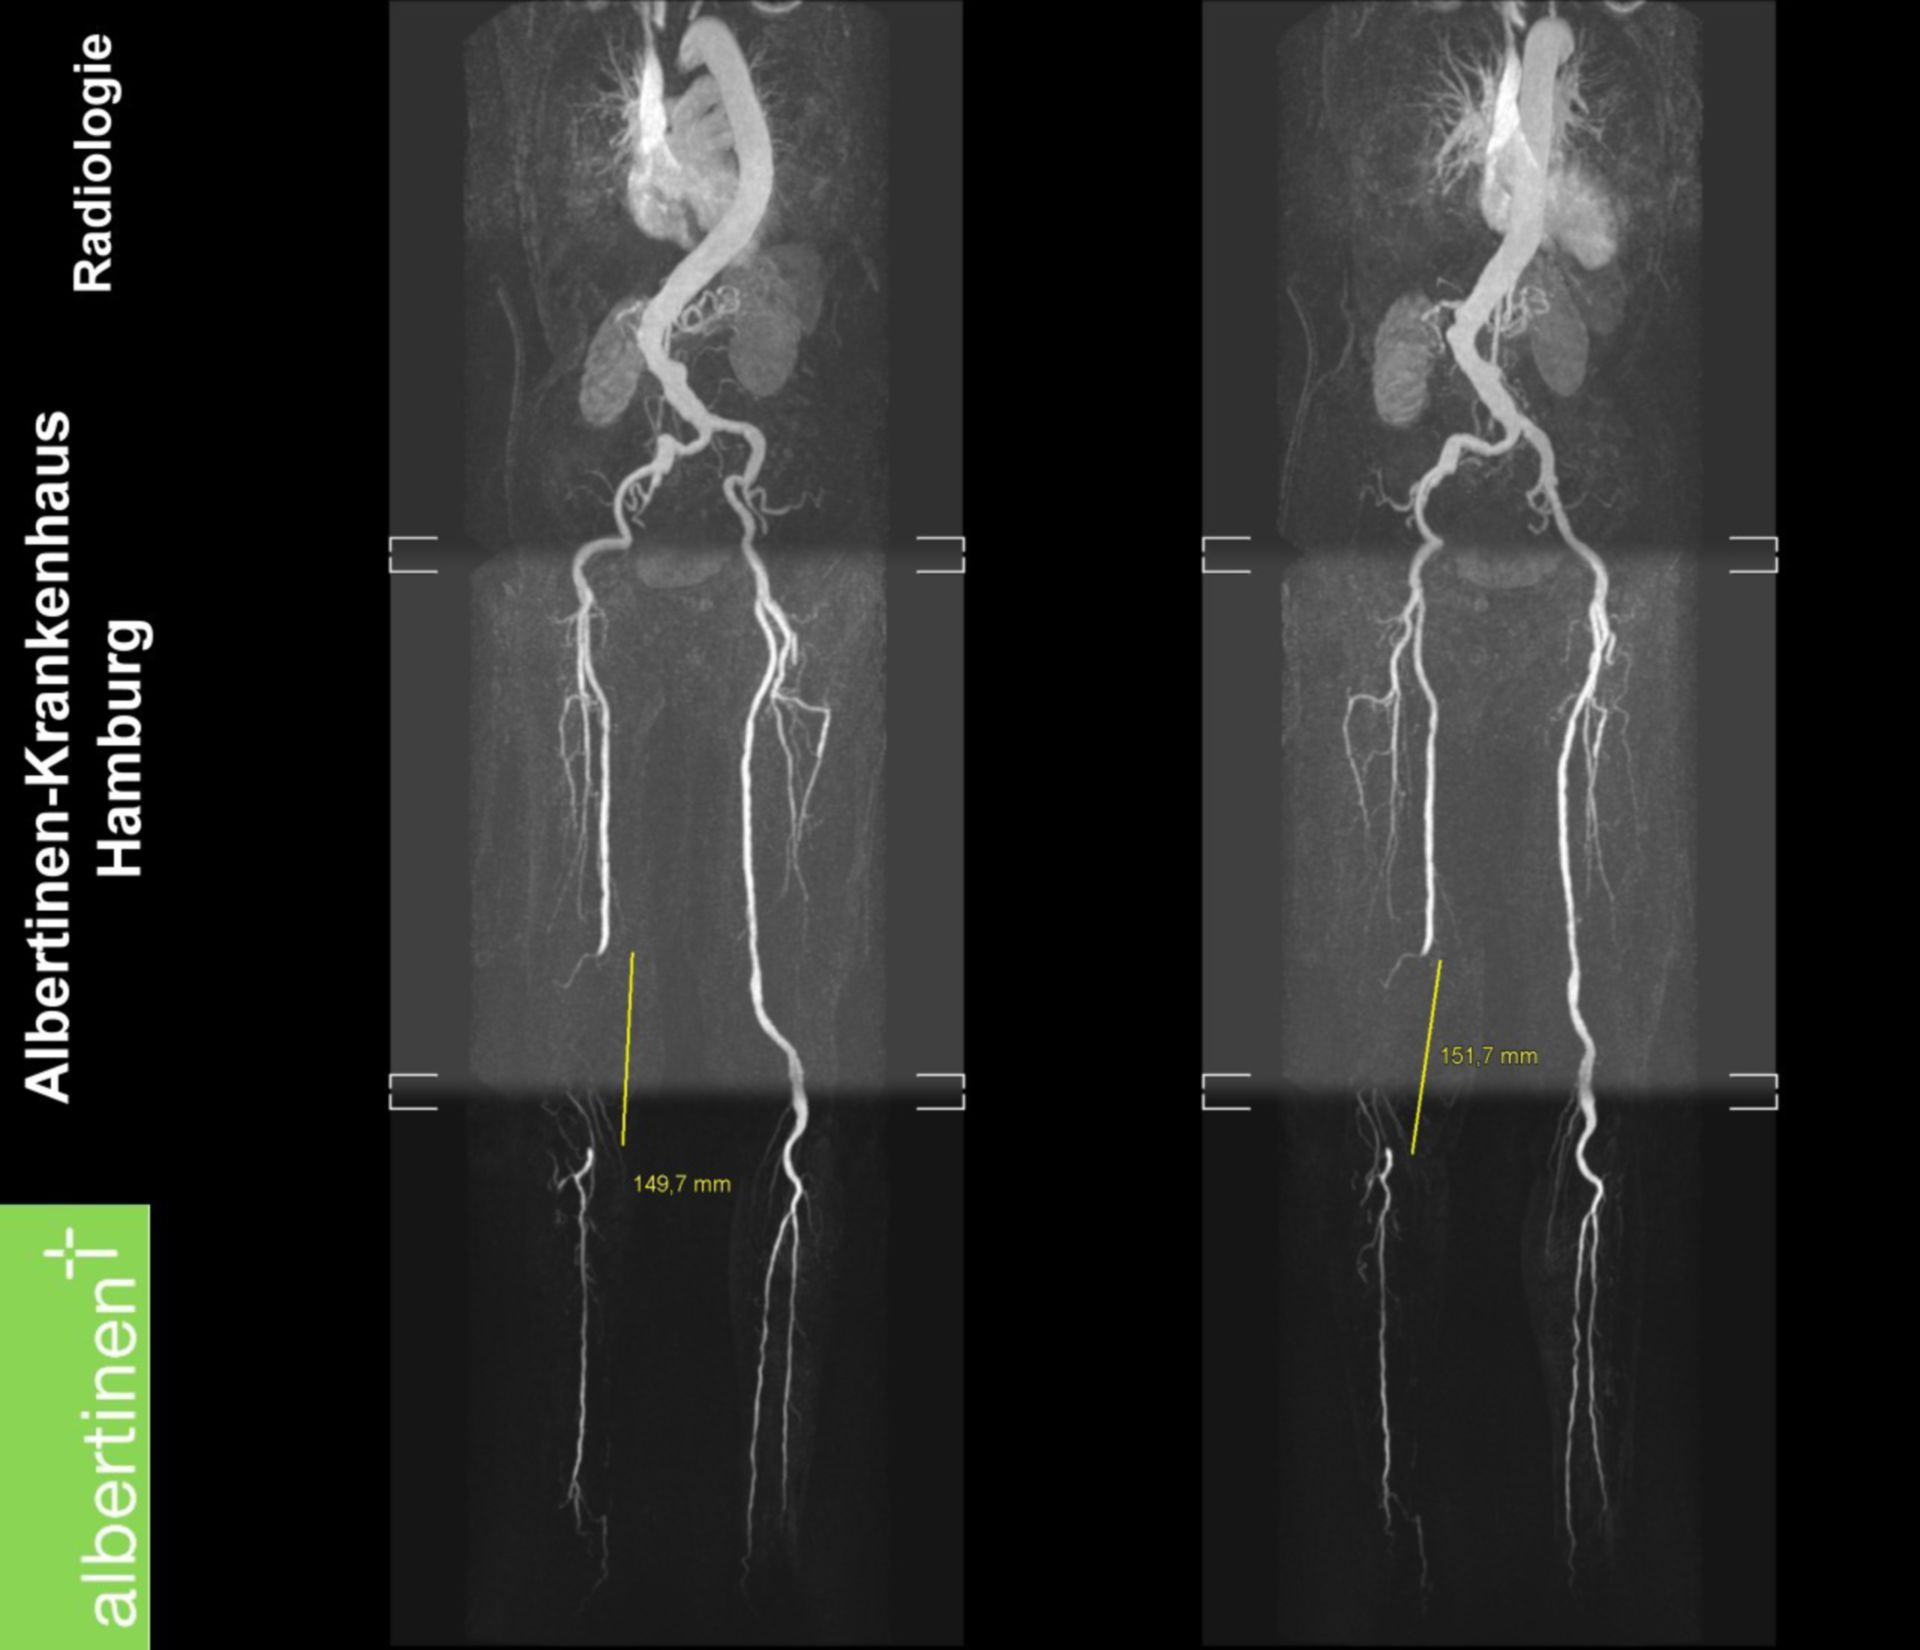 MRI: Occlusion of the femoral artery in the left leg